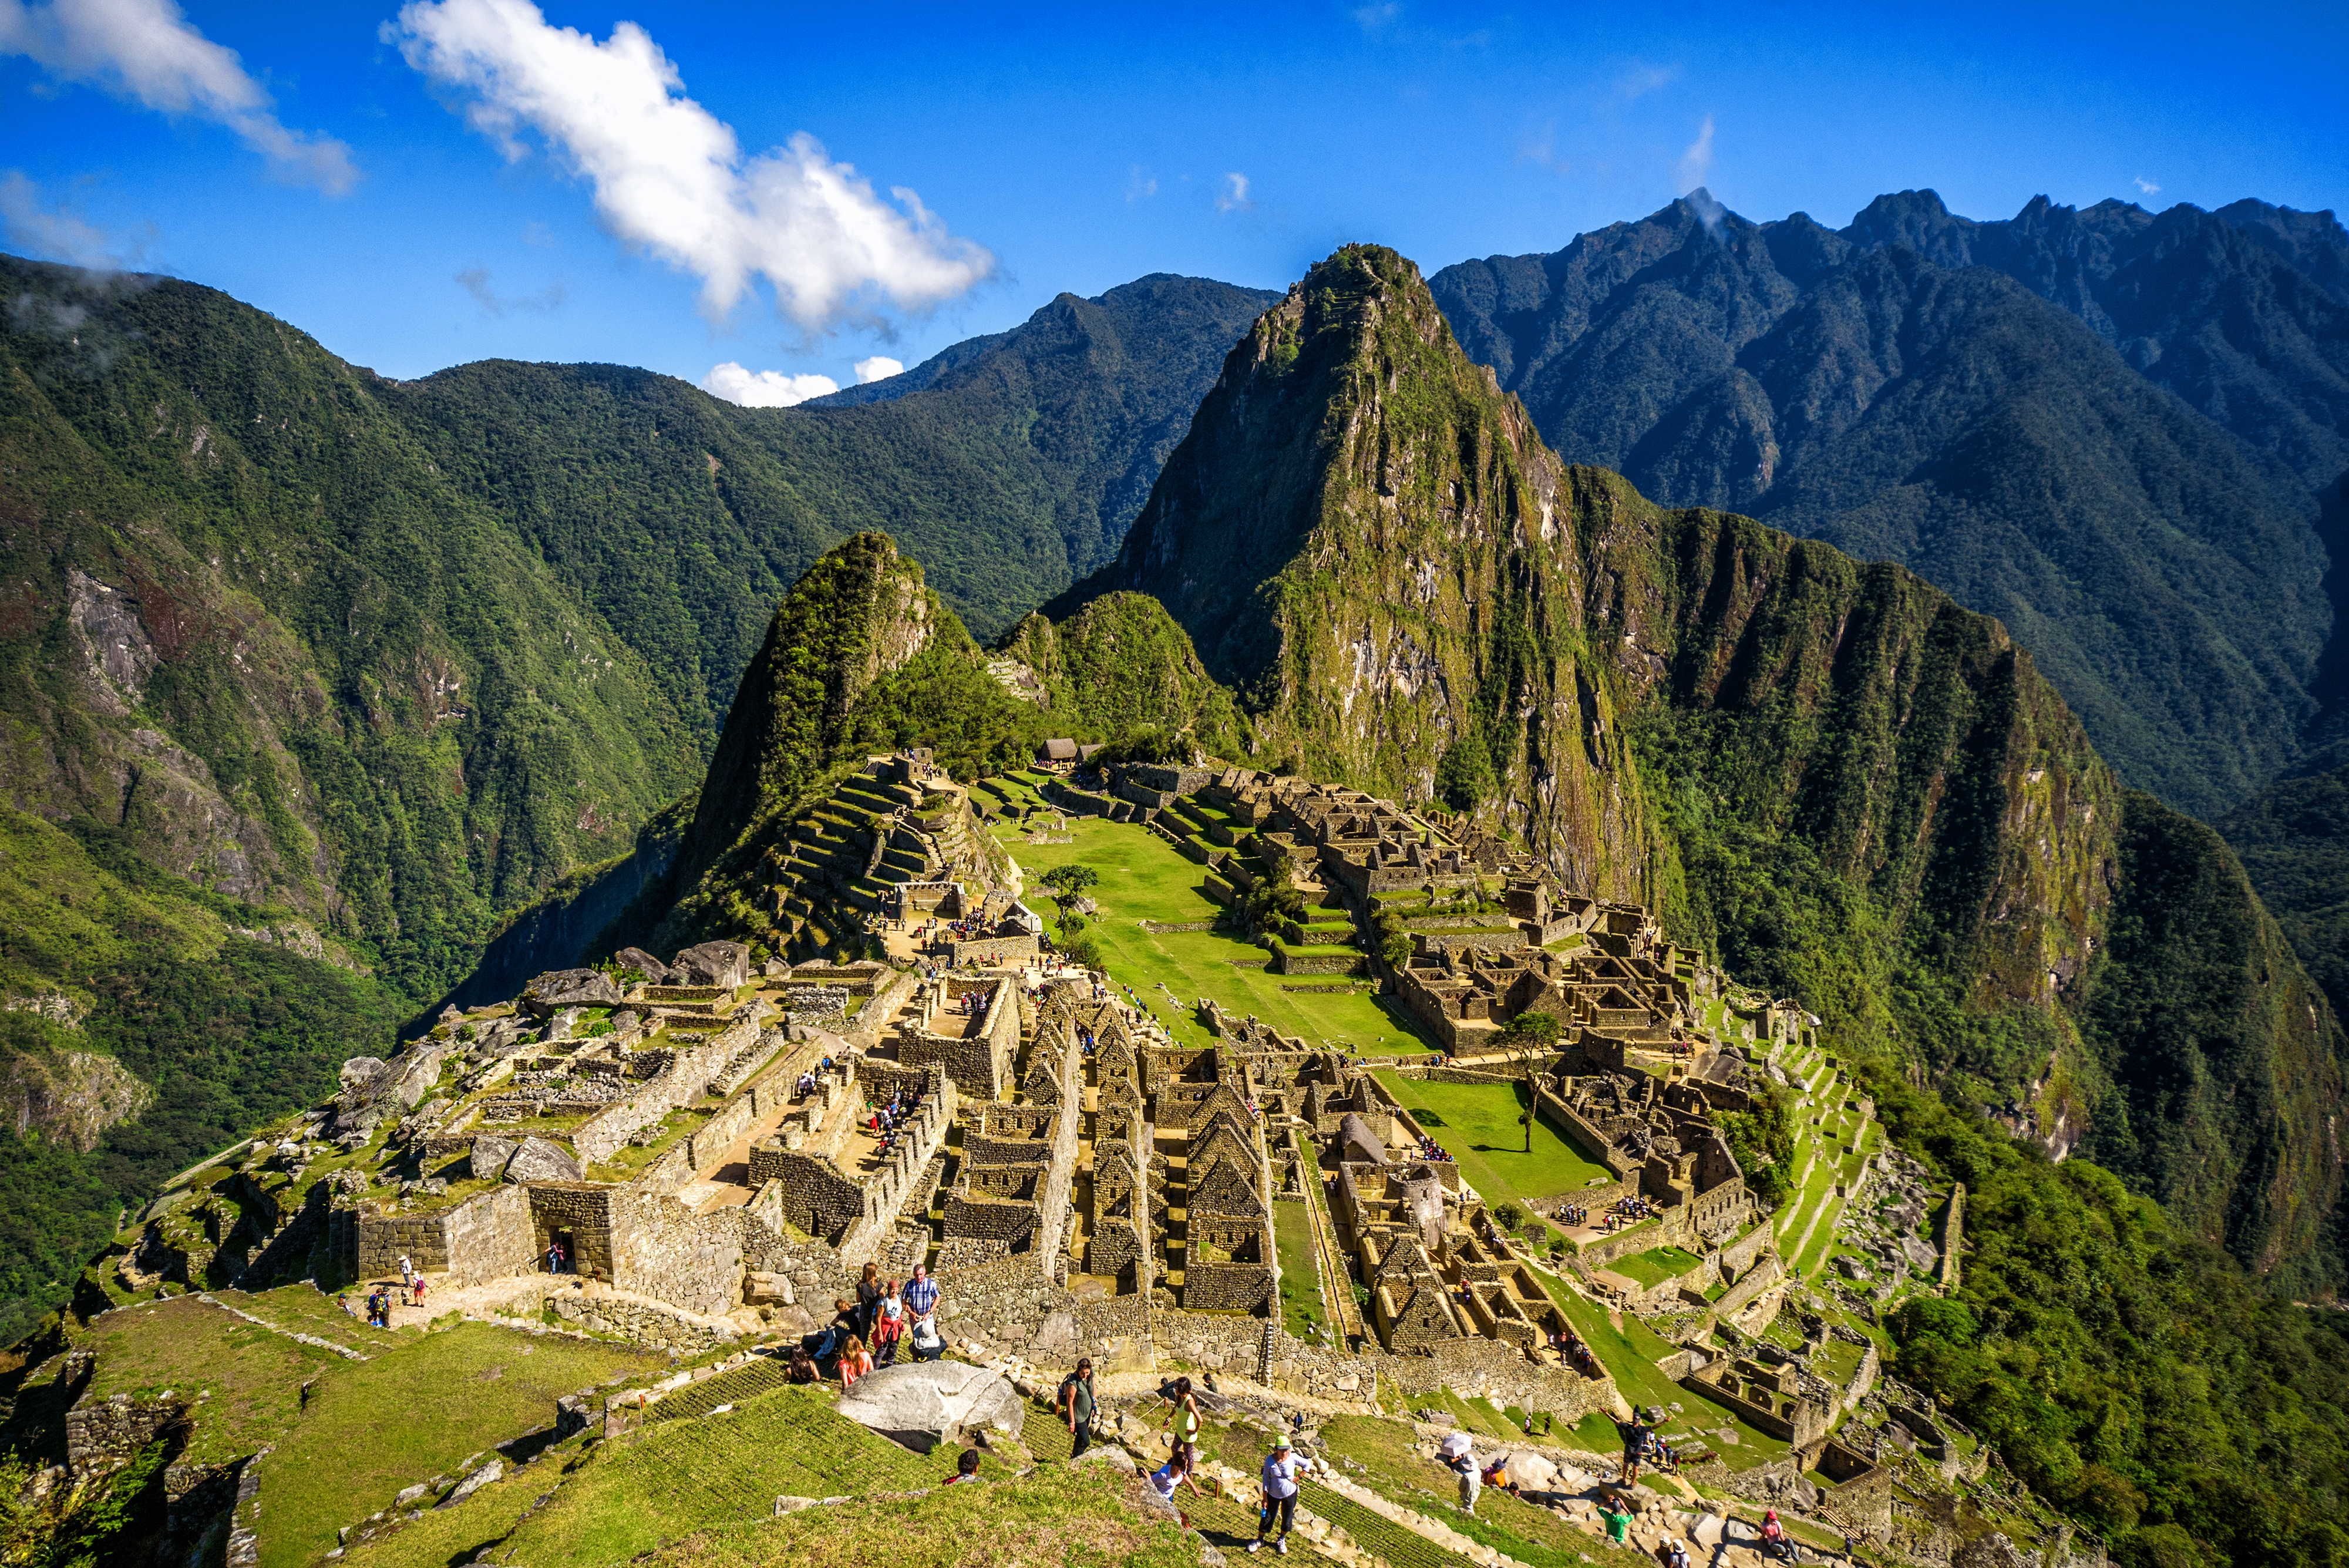 View of the Lost Incan City of Machu Pic